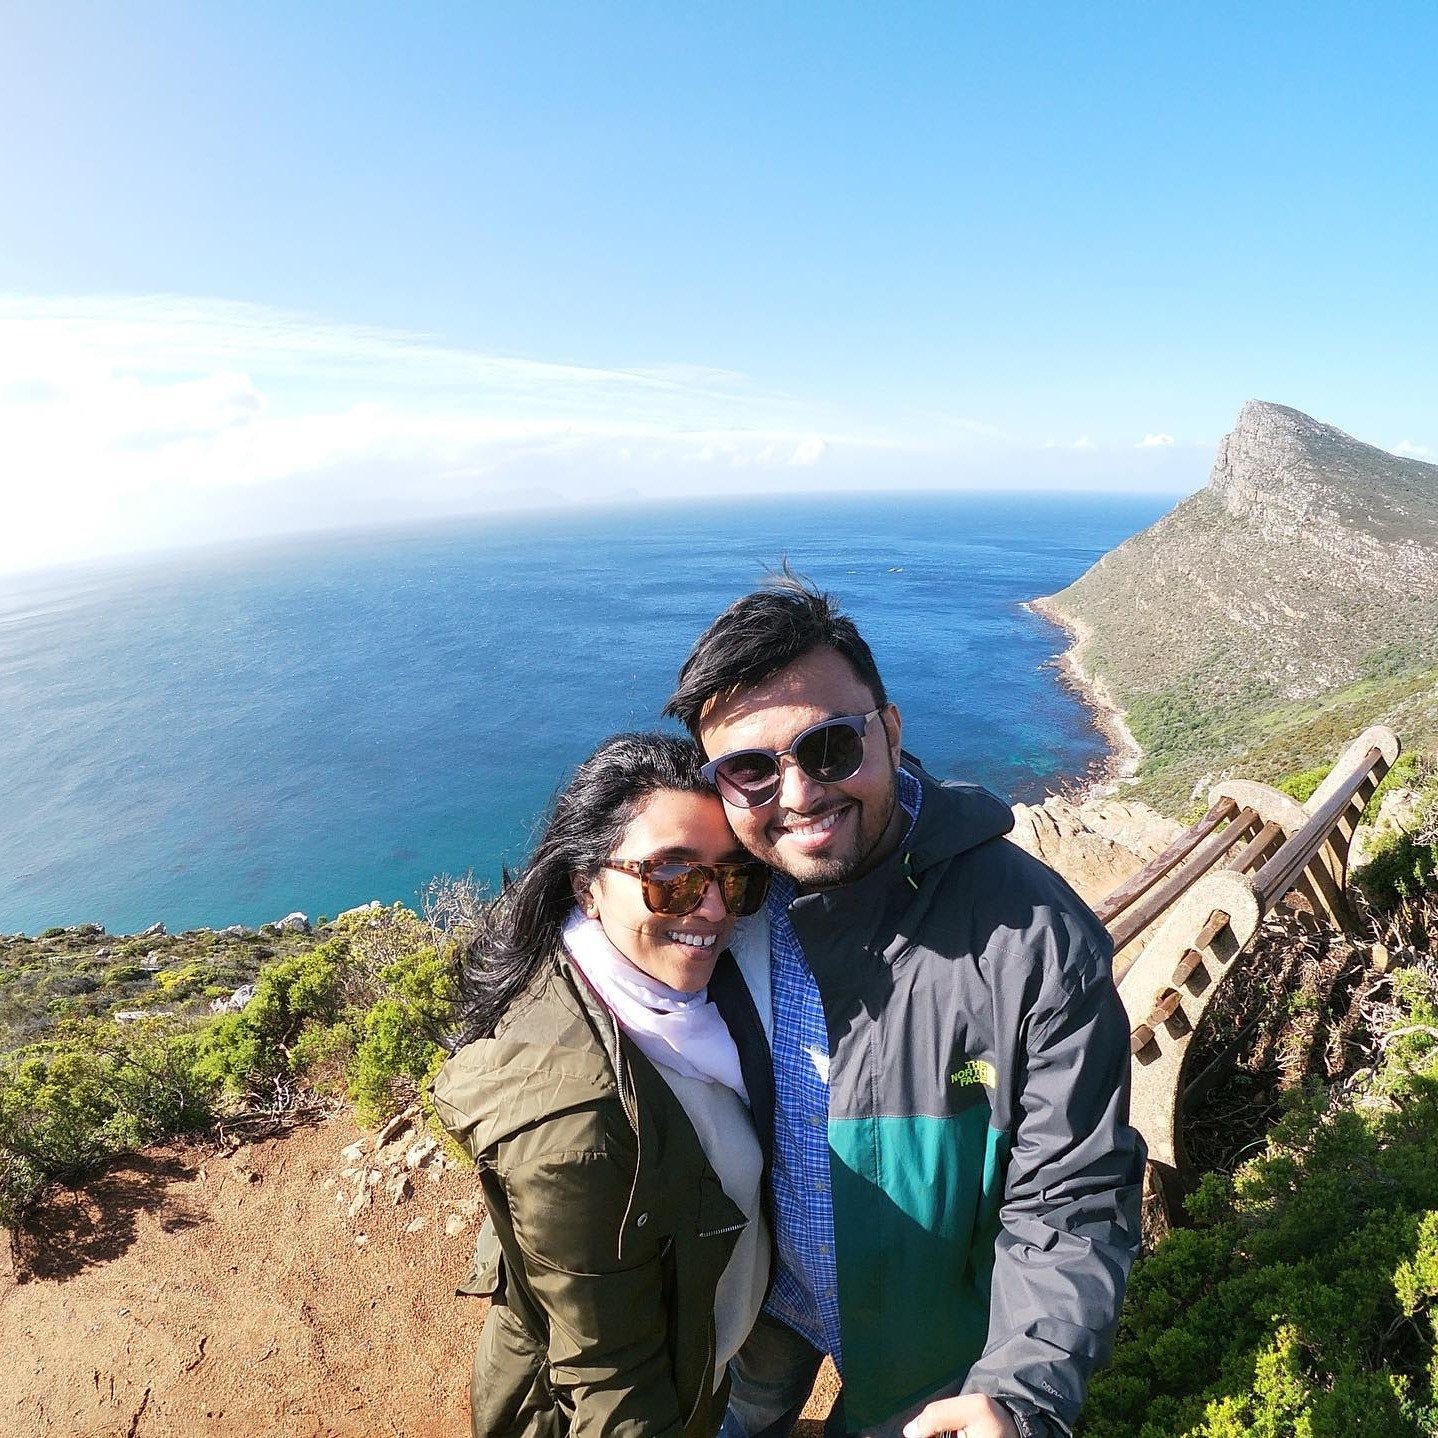 cape-town-travel-guide-south-africa